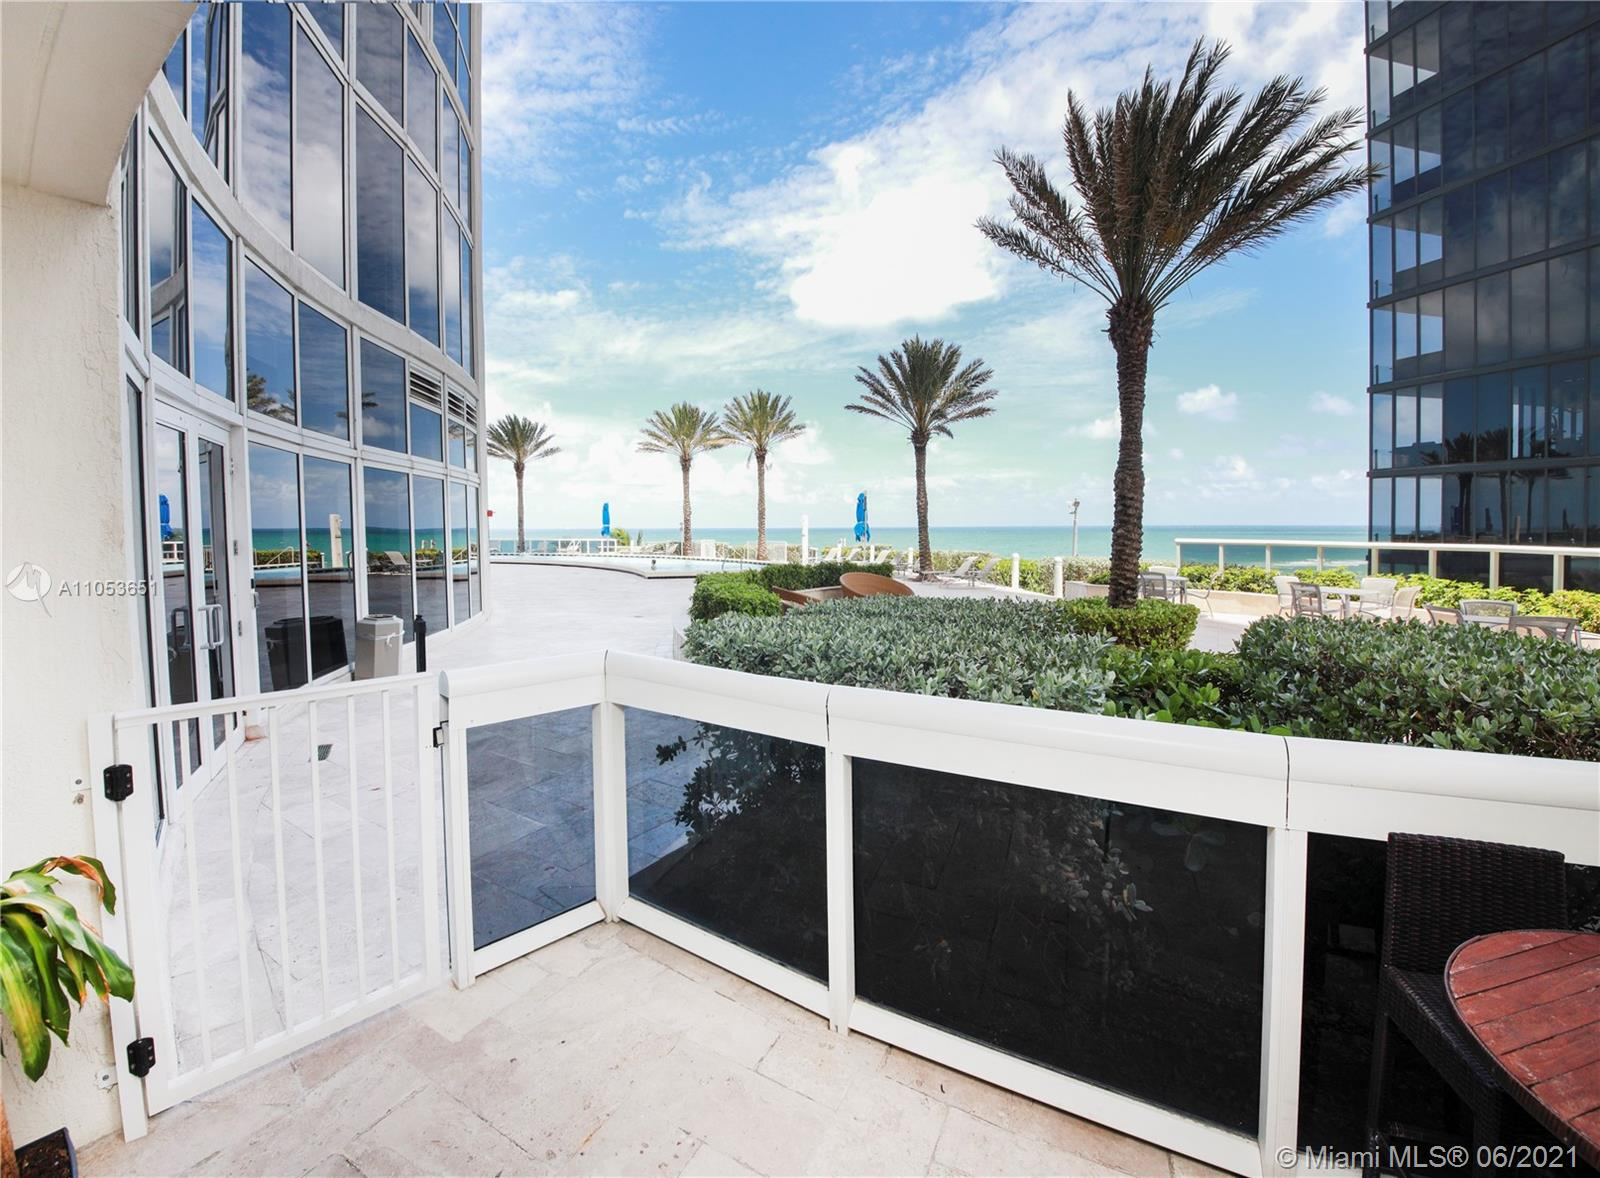 Beautiful Lanai Unit! One of the most spectacular units in the building. Enjoy waking up pool side as your balcony leads you directly to the pristine white sand beaches of Sunny Isles. Apartment has 2 Full Bedrooms + DEN, 2.5 Bathrooms.   Enjoy Private Beach Service, Gym, Spa and much more.